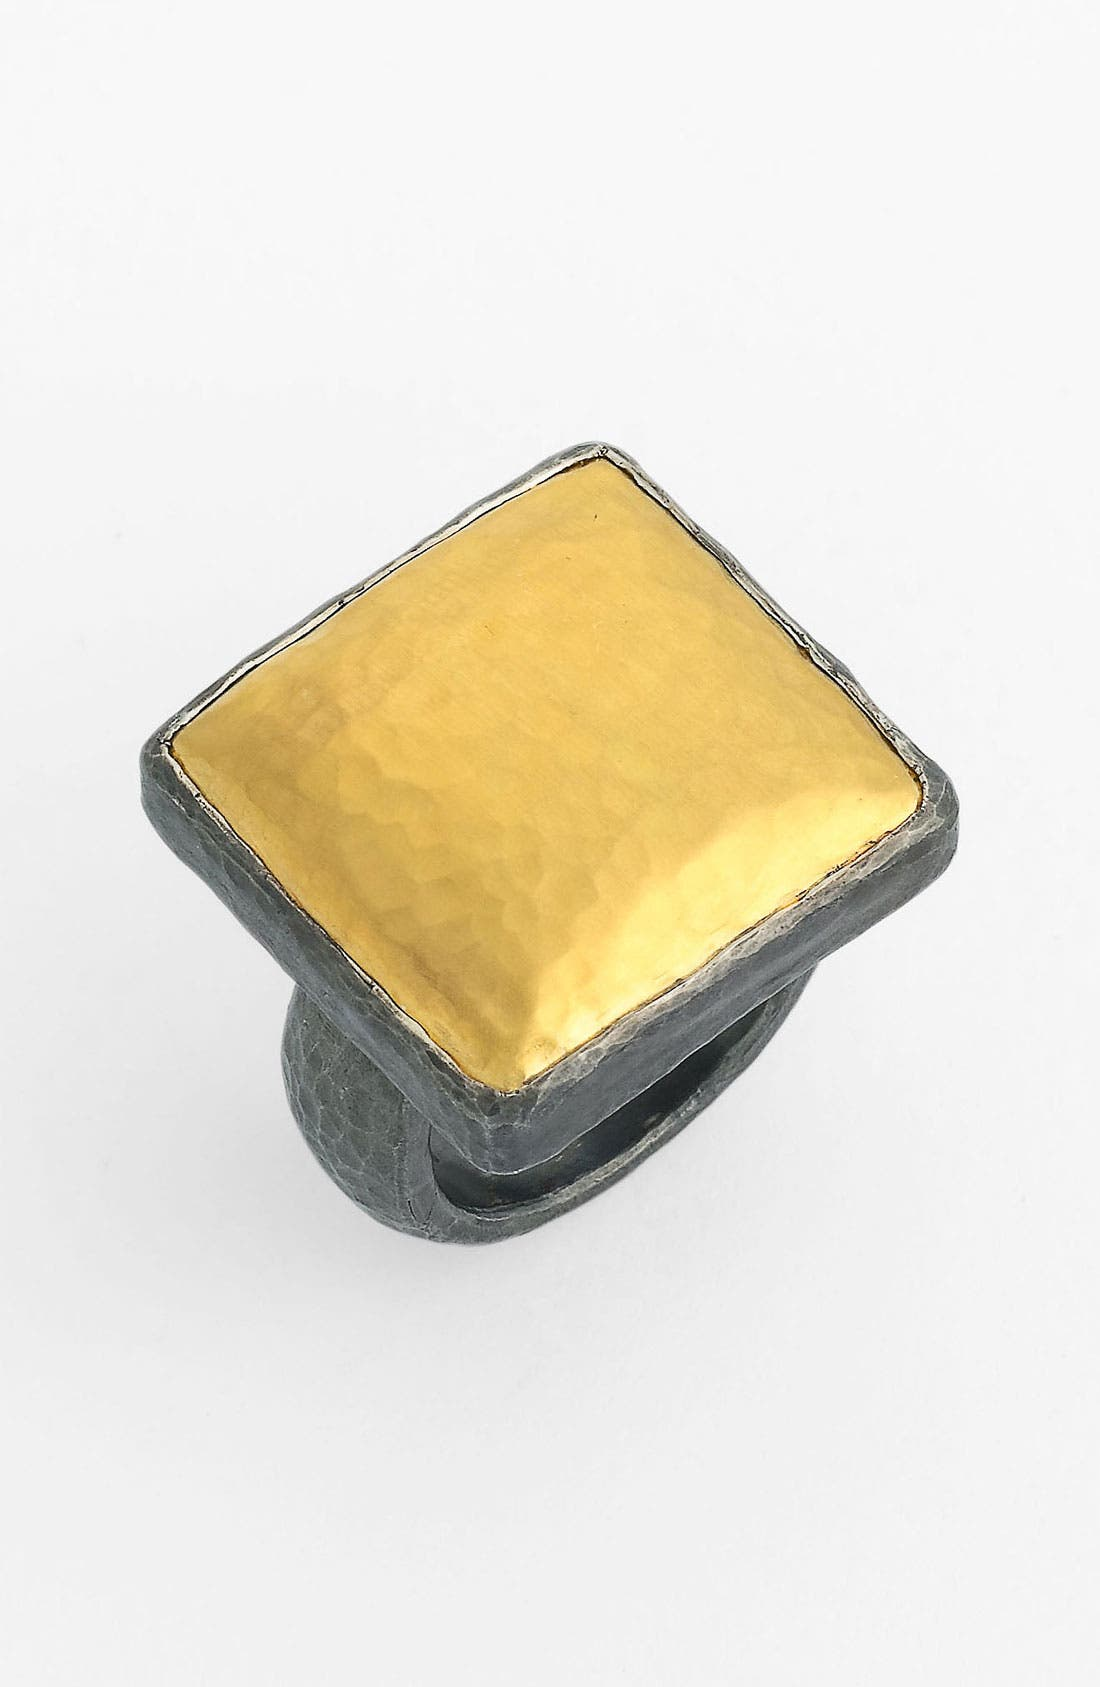 Alternate Image 1 Selected - Gurhan 'Amulet' Square Ring